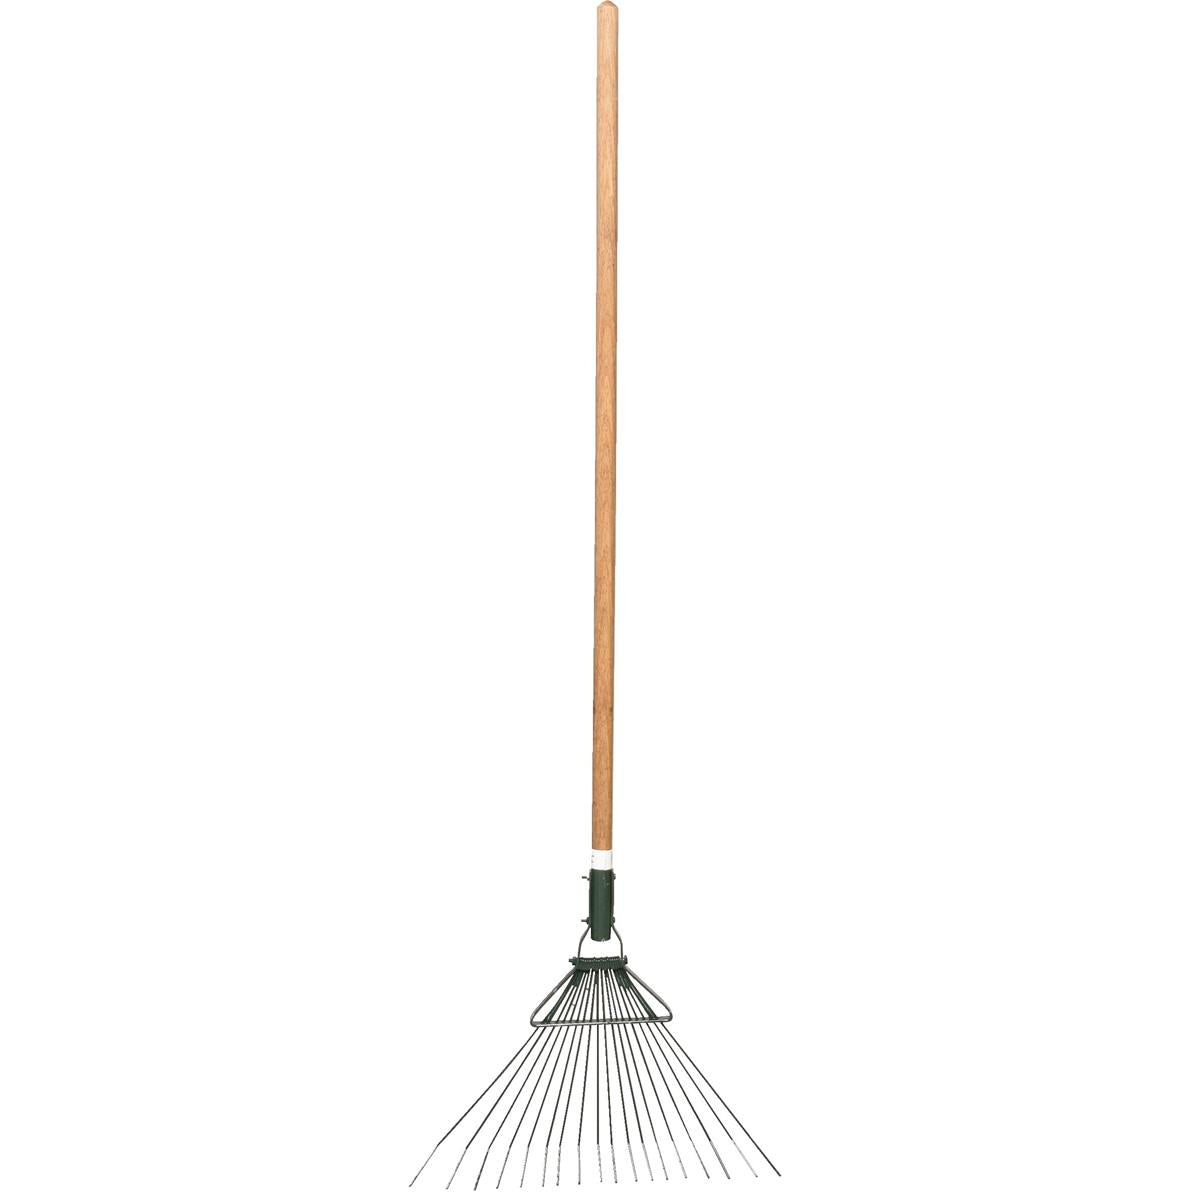 Broom Fire Rake with Wooden Handle